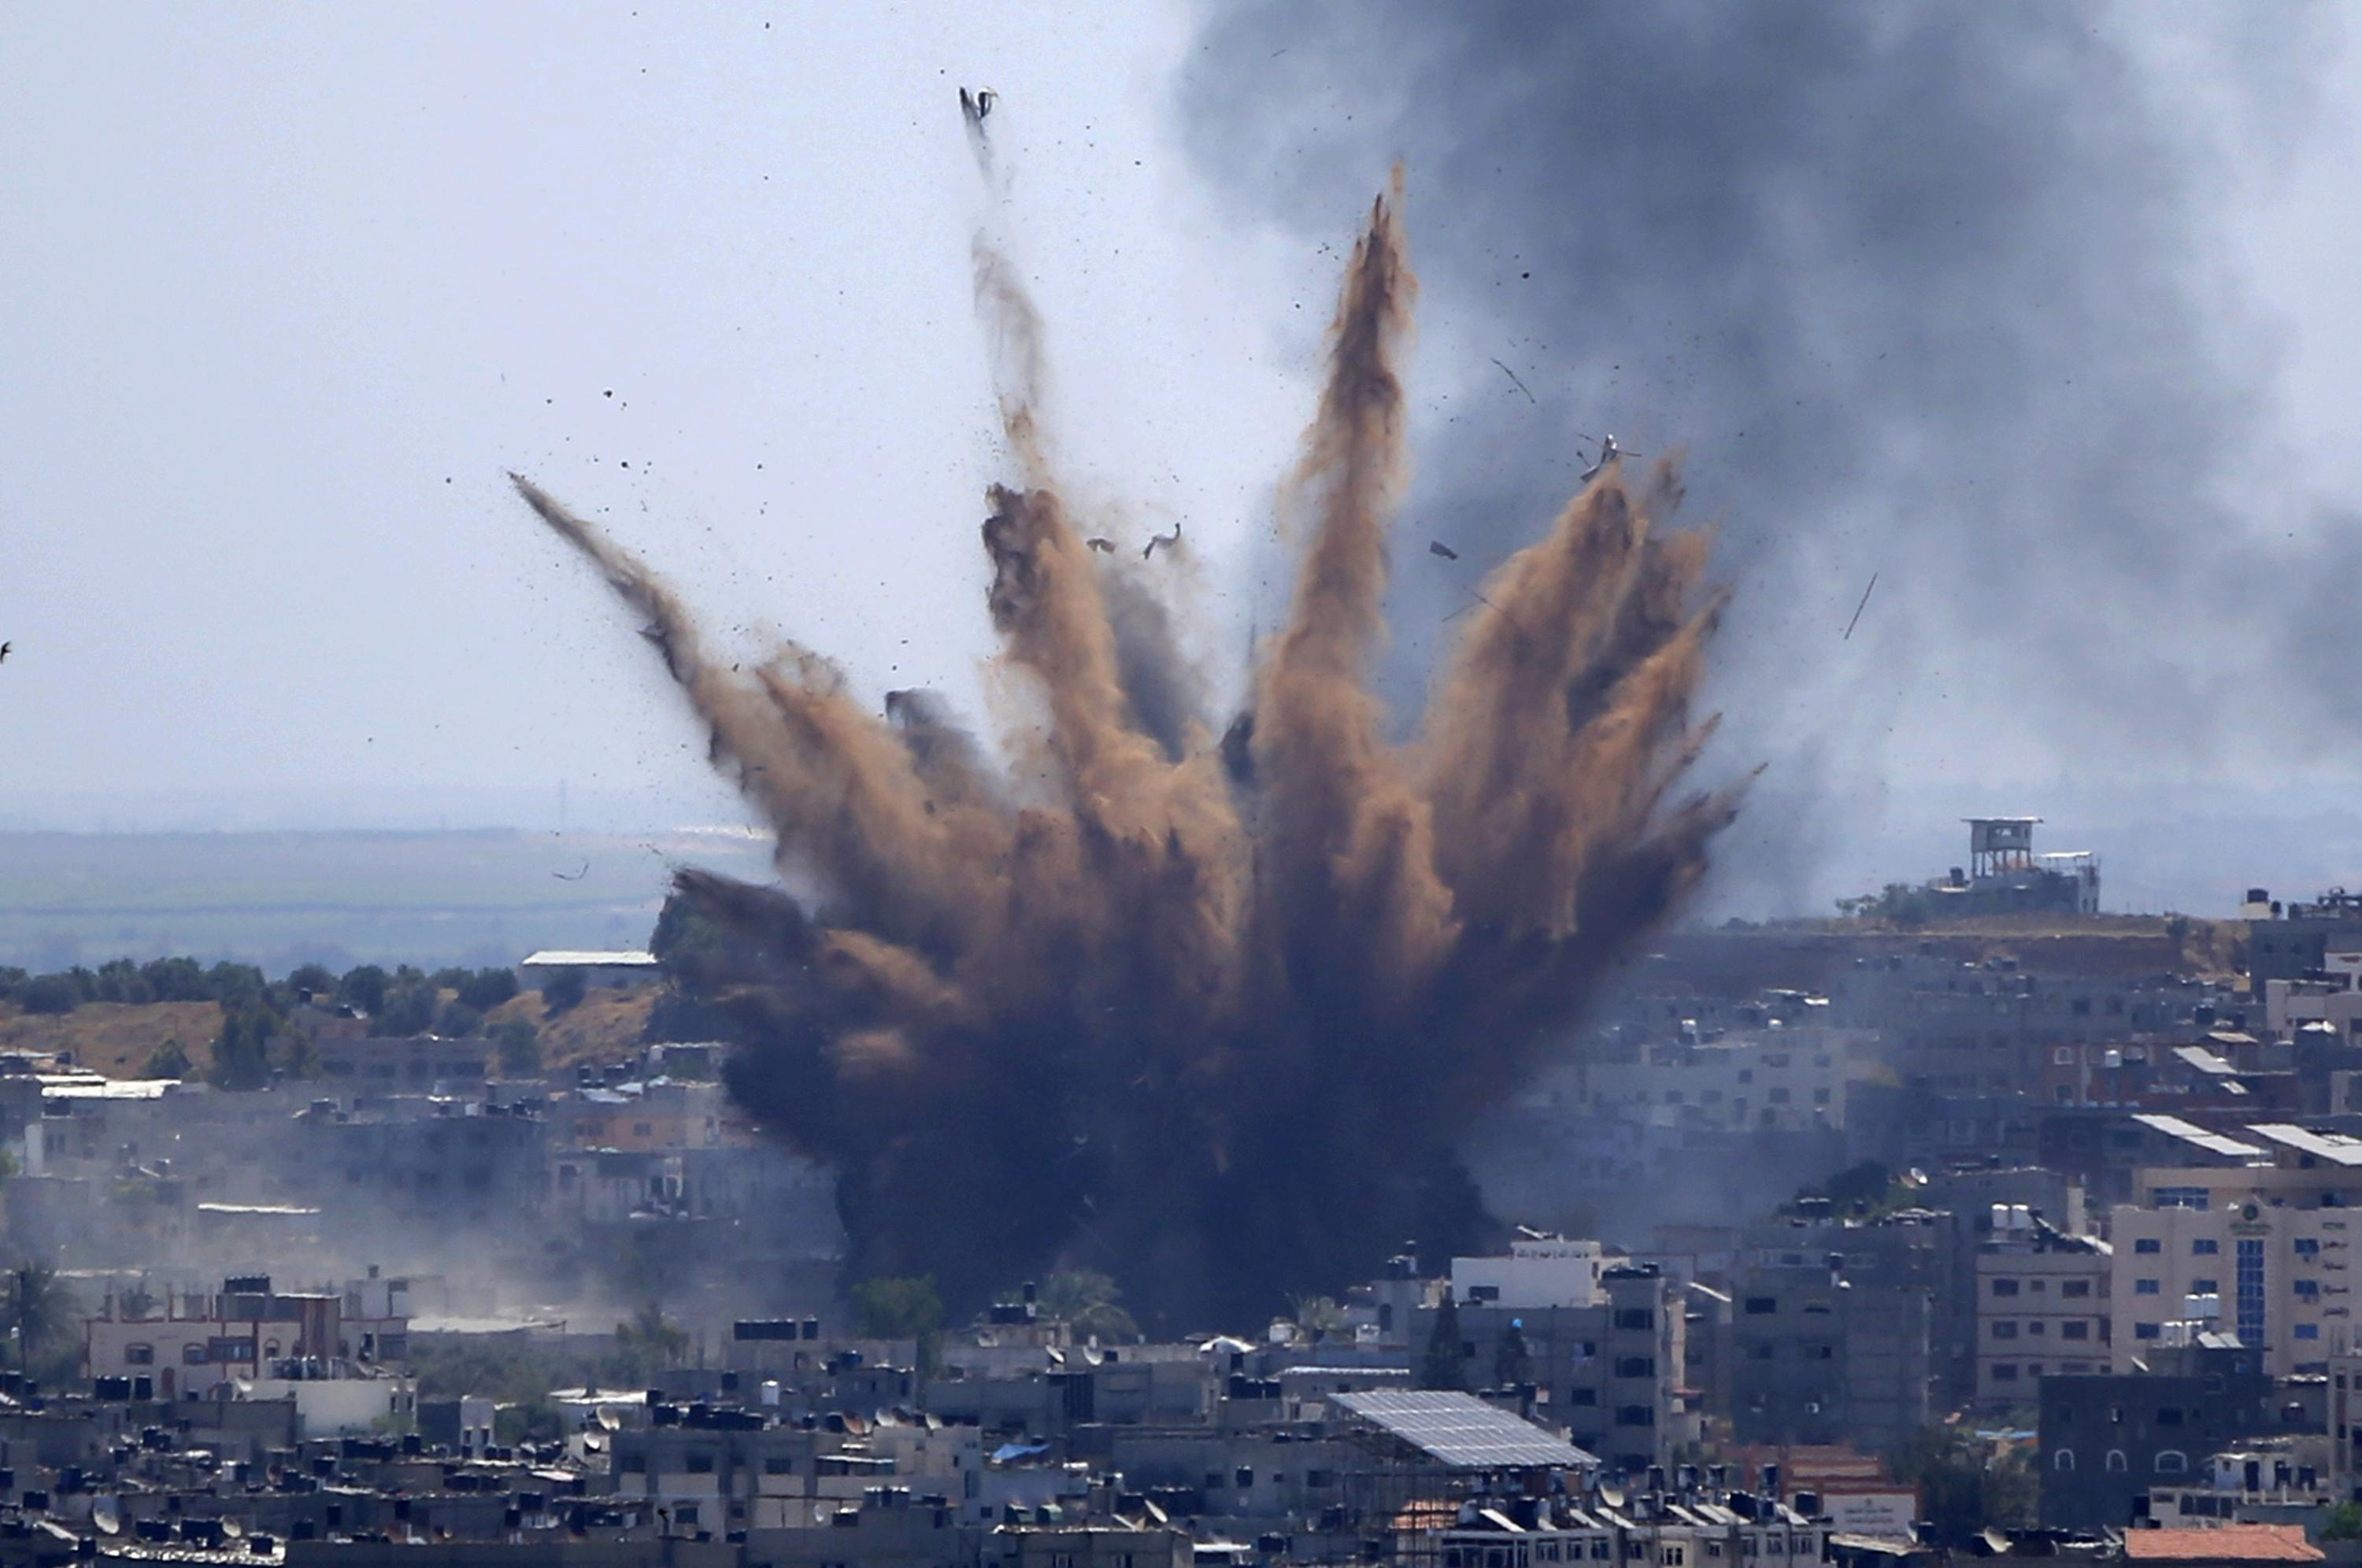 Analysis: Israel, Hamas race to claim victory before truce